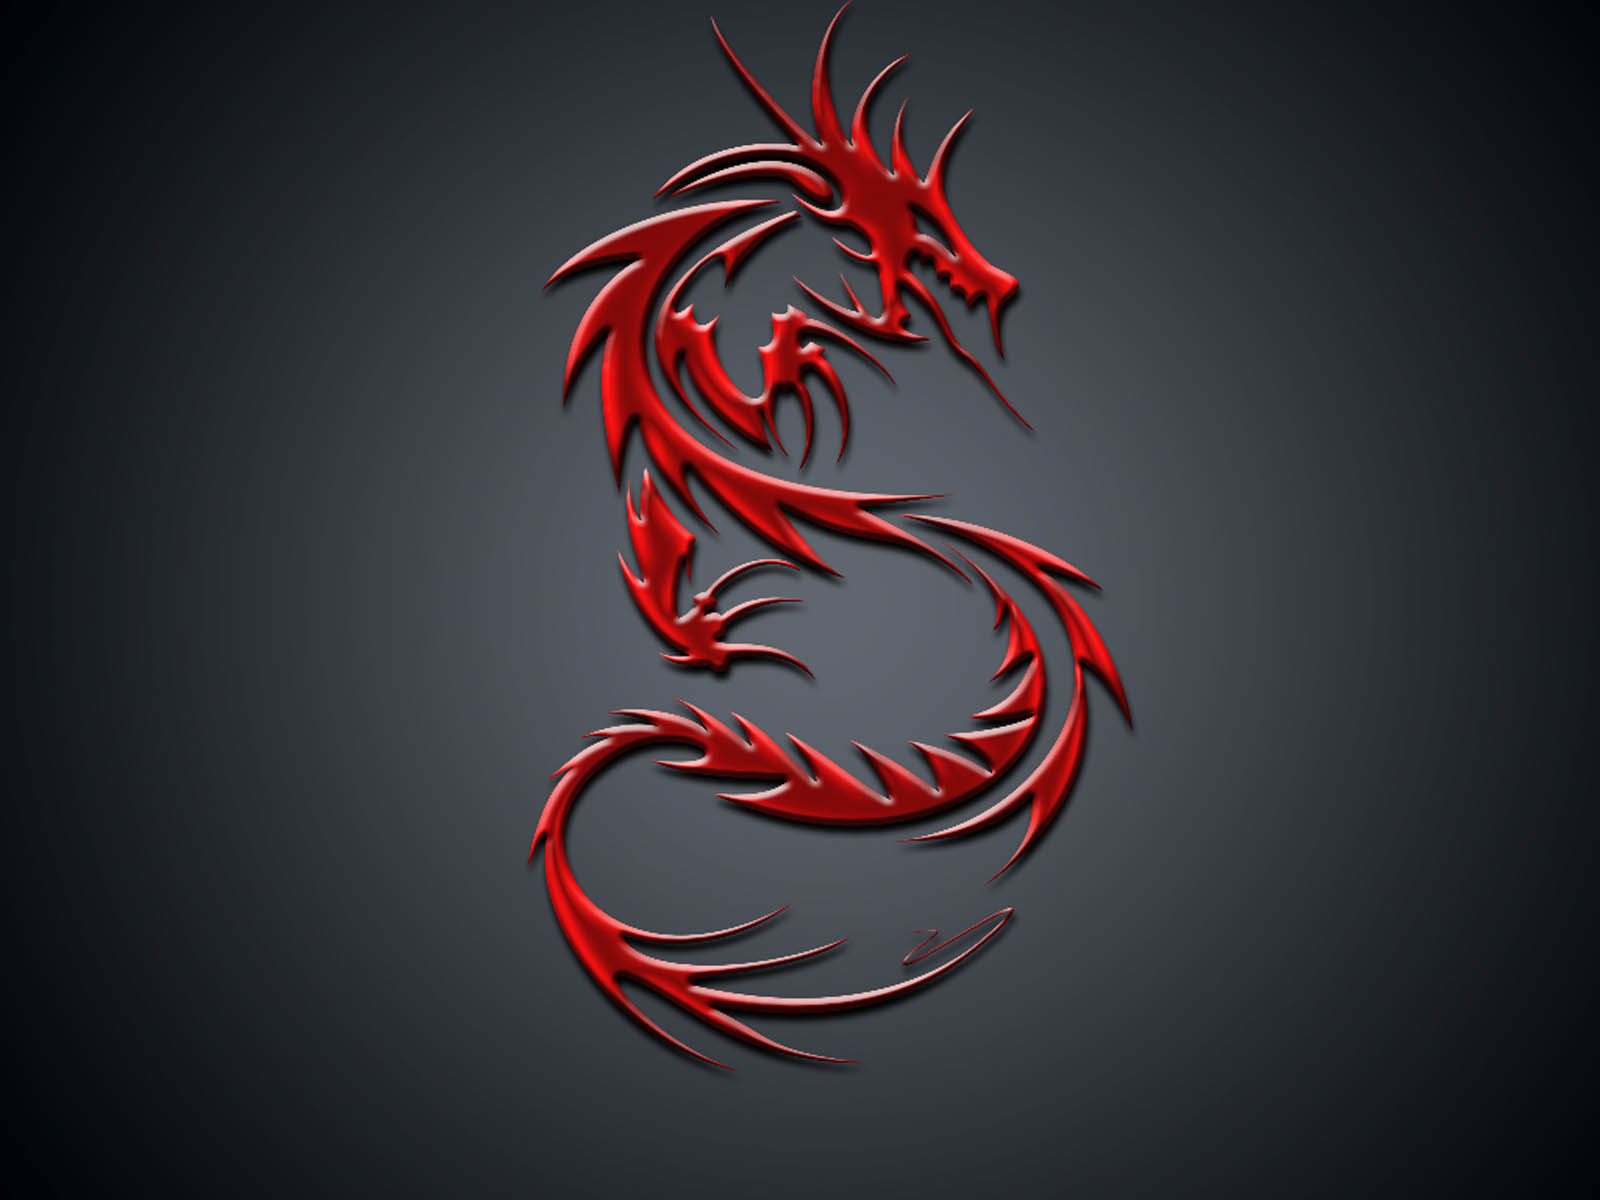 wallpapers dragon wallpapers